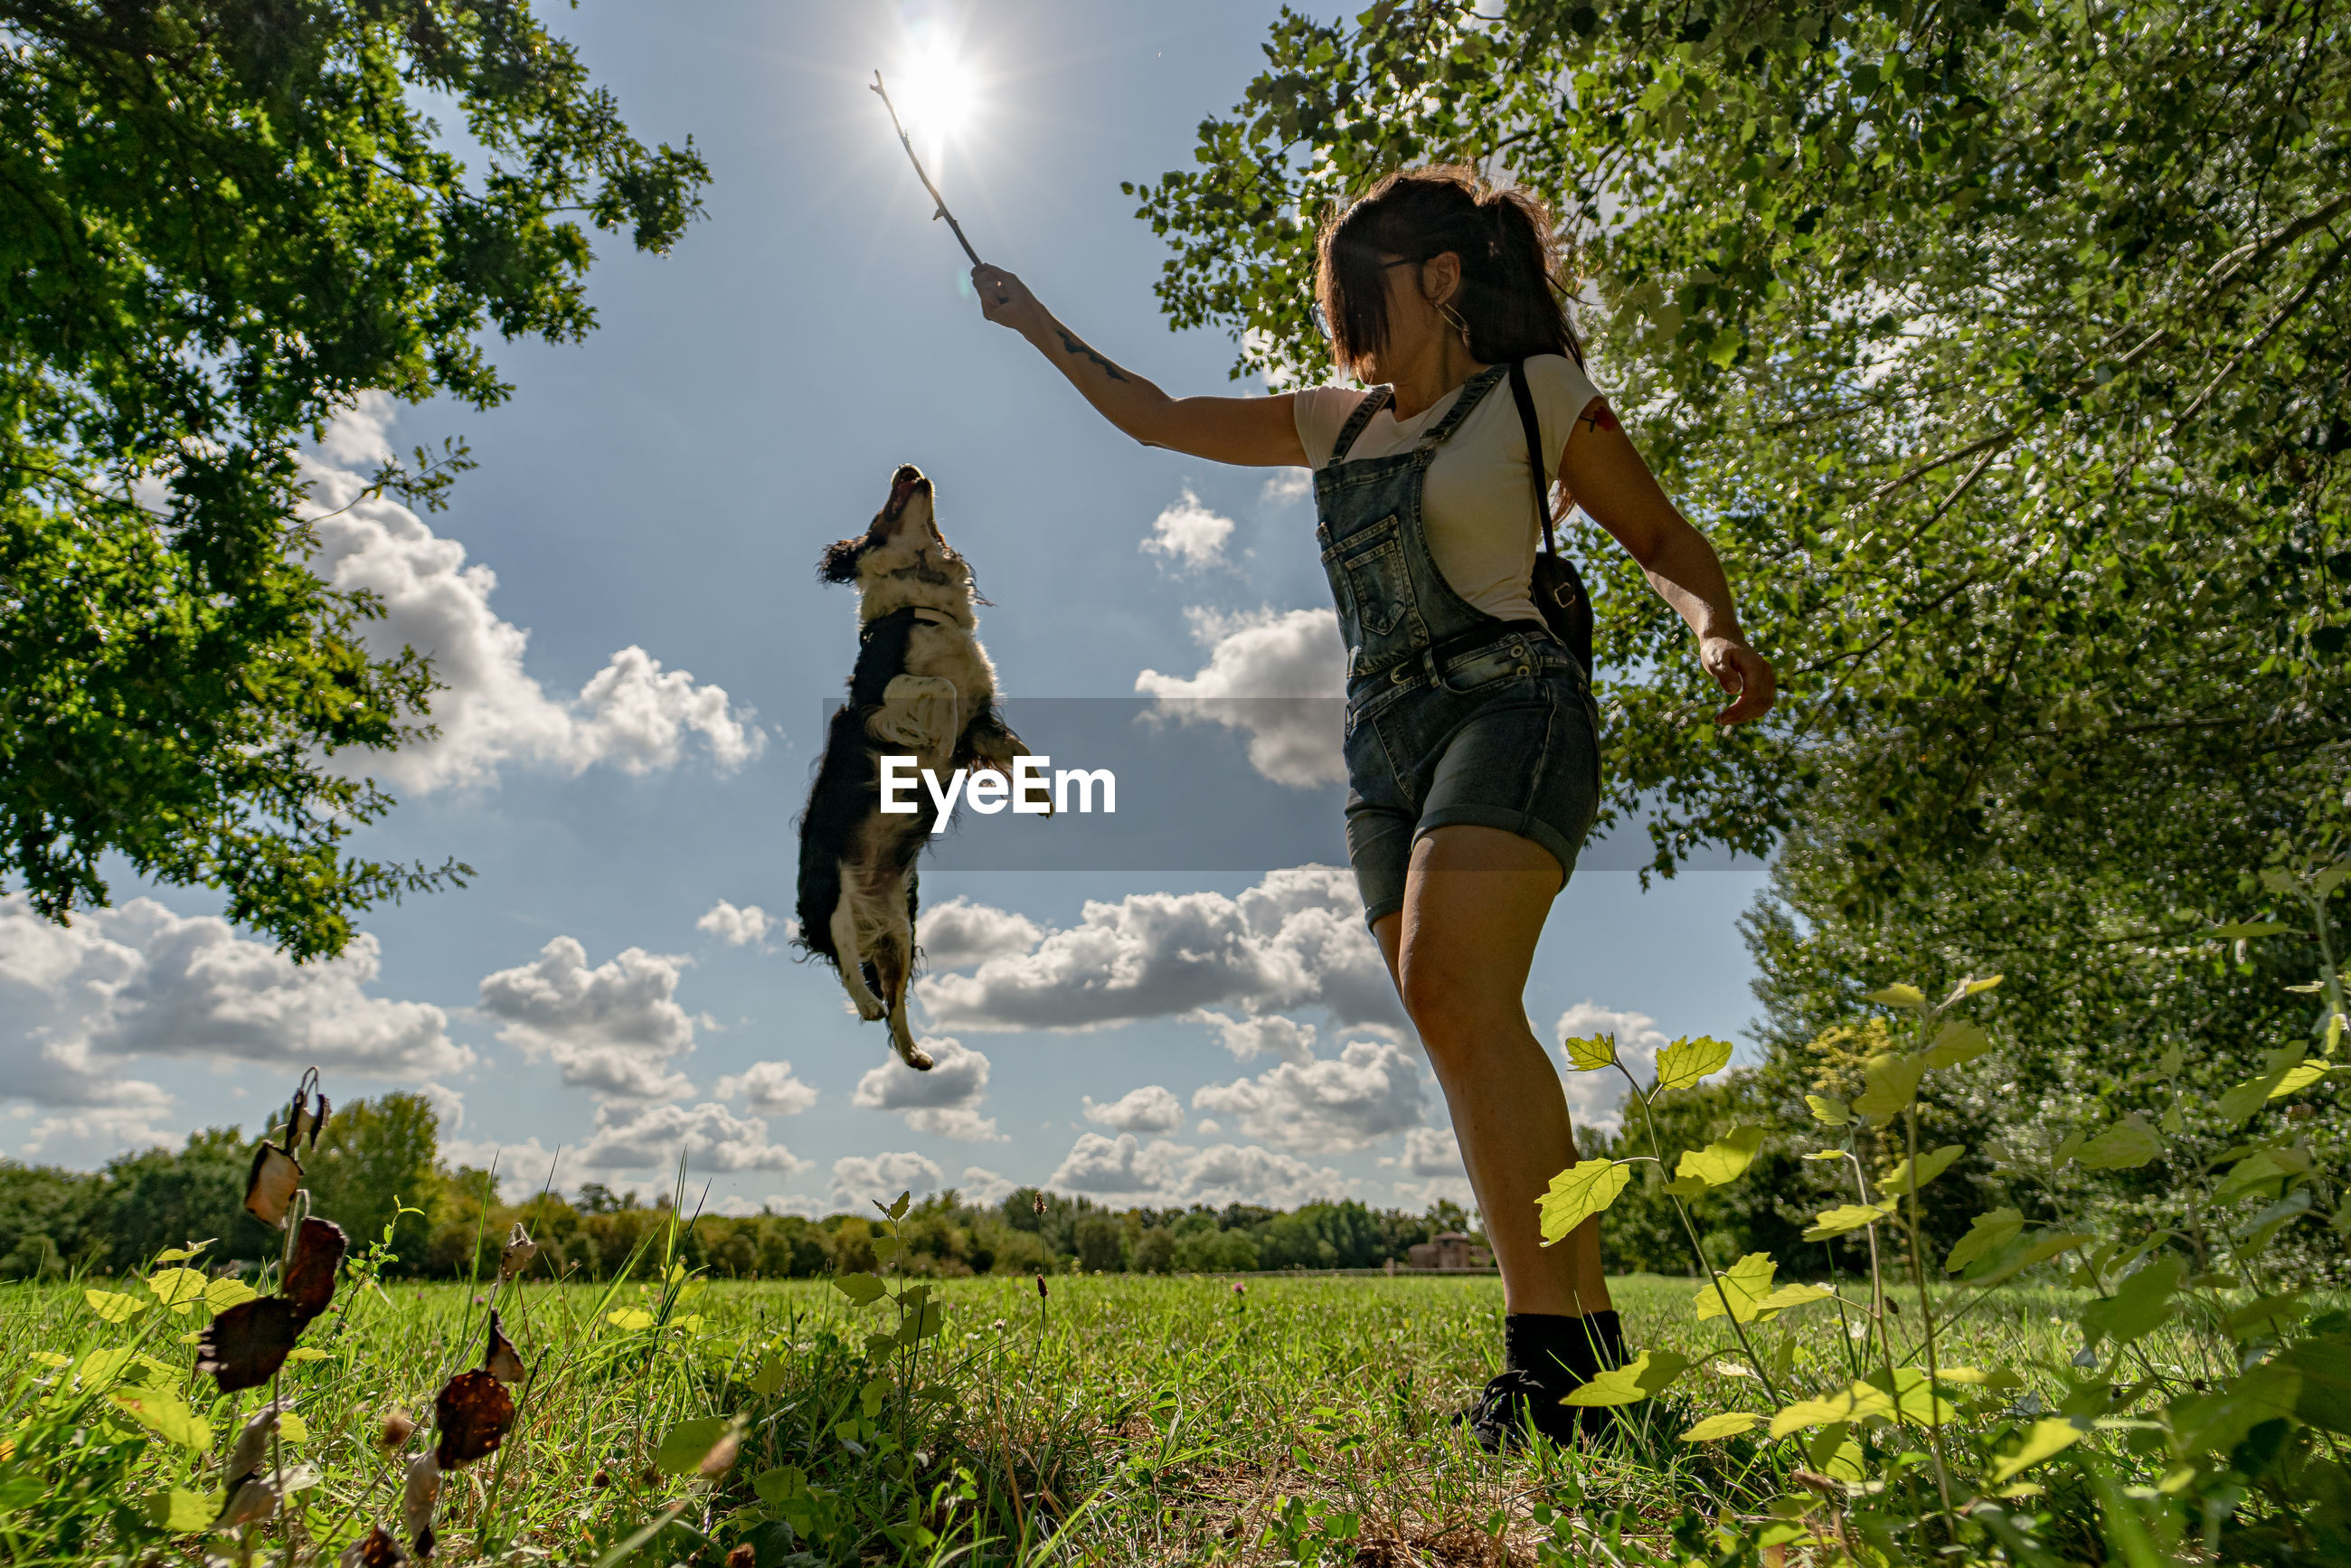 Woman holding stick while playing with dog against trees and sky